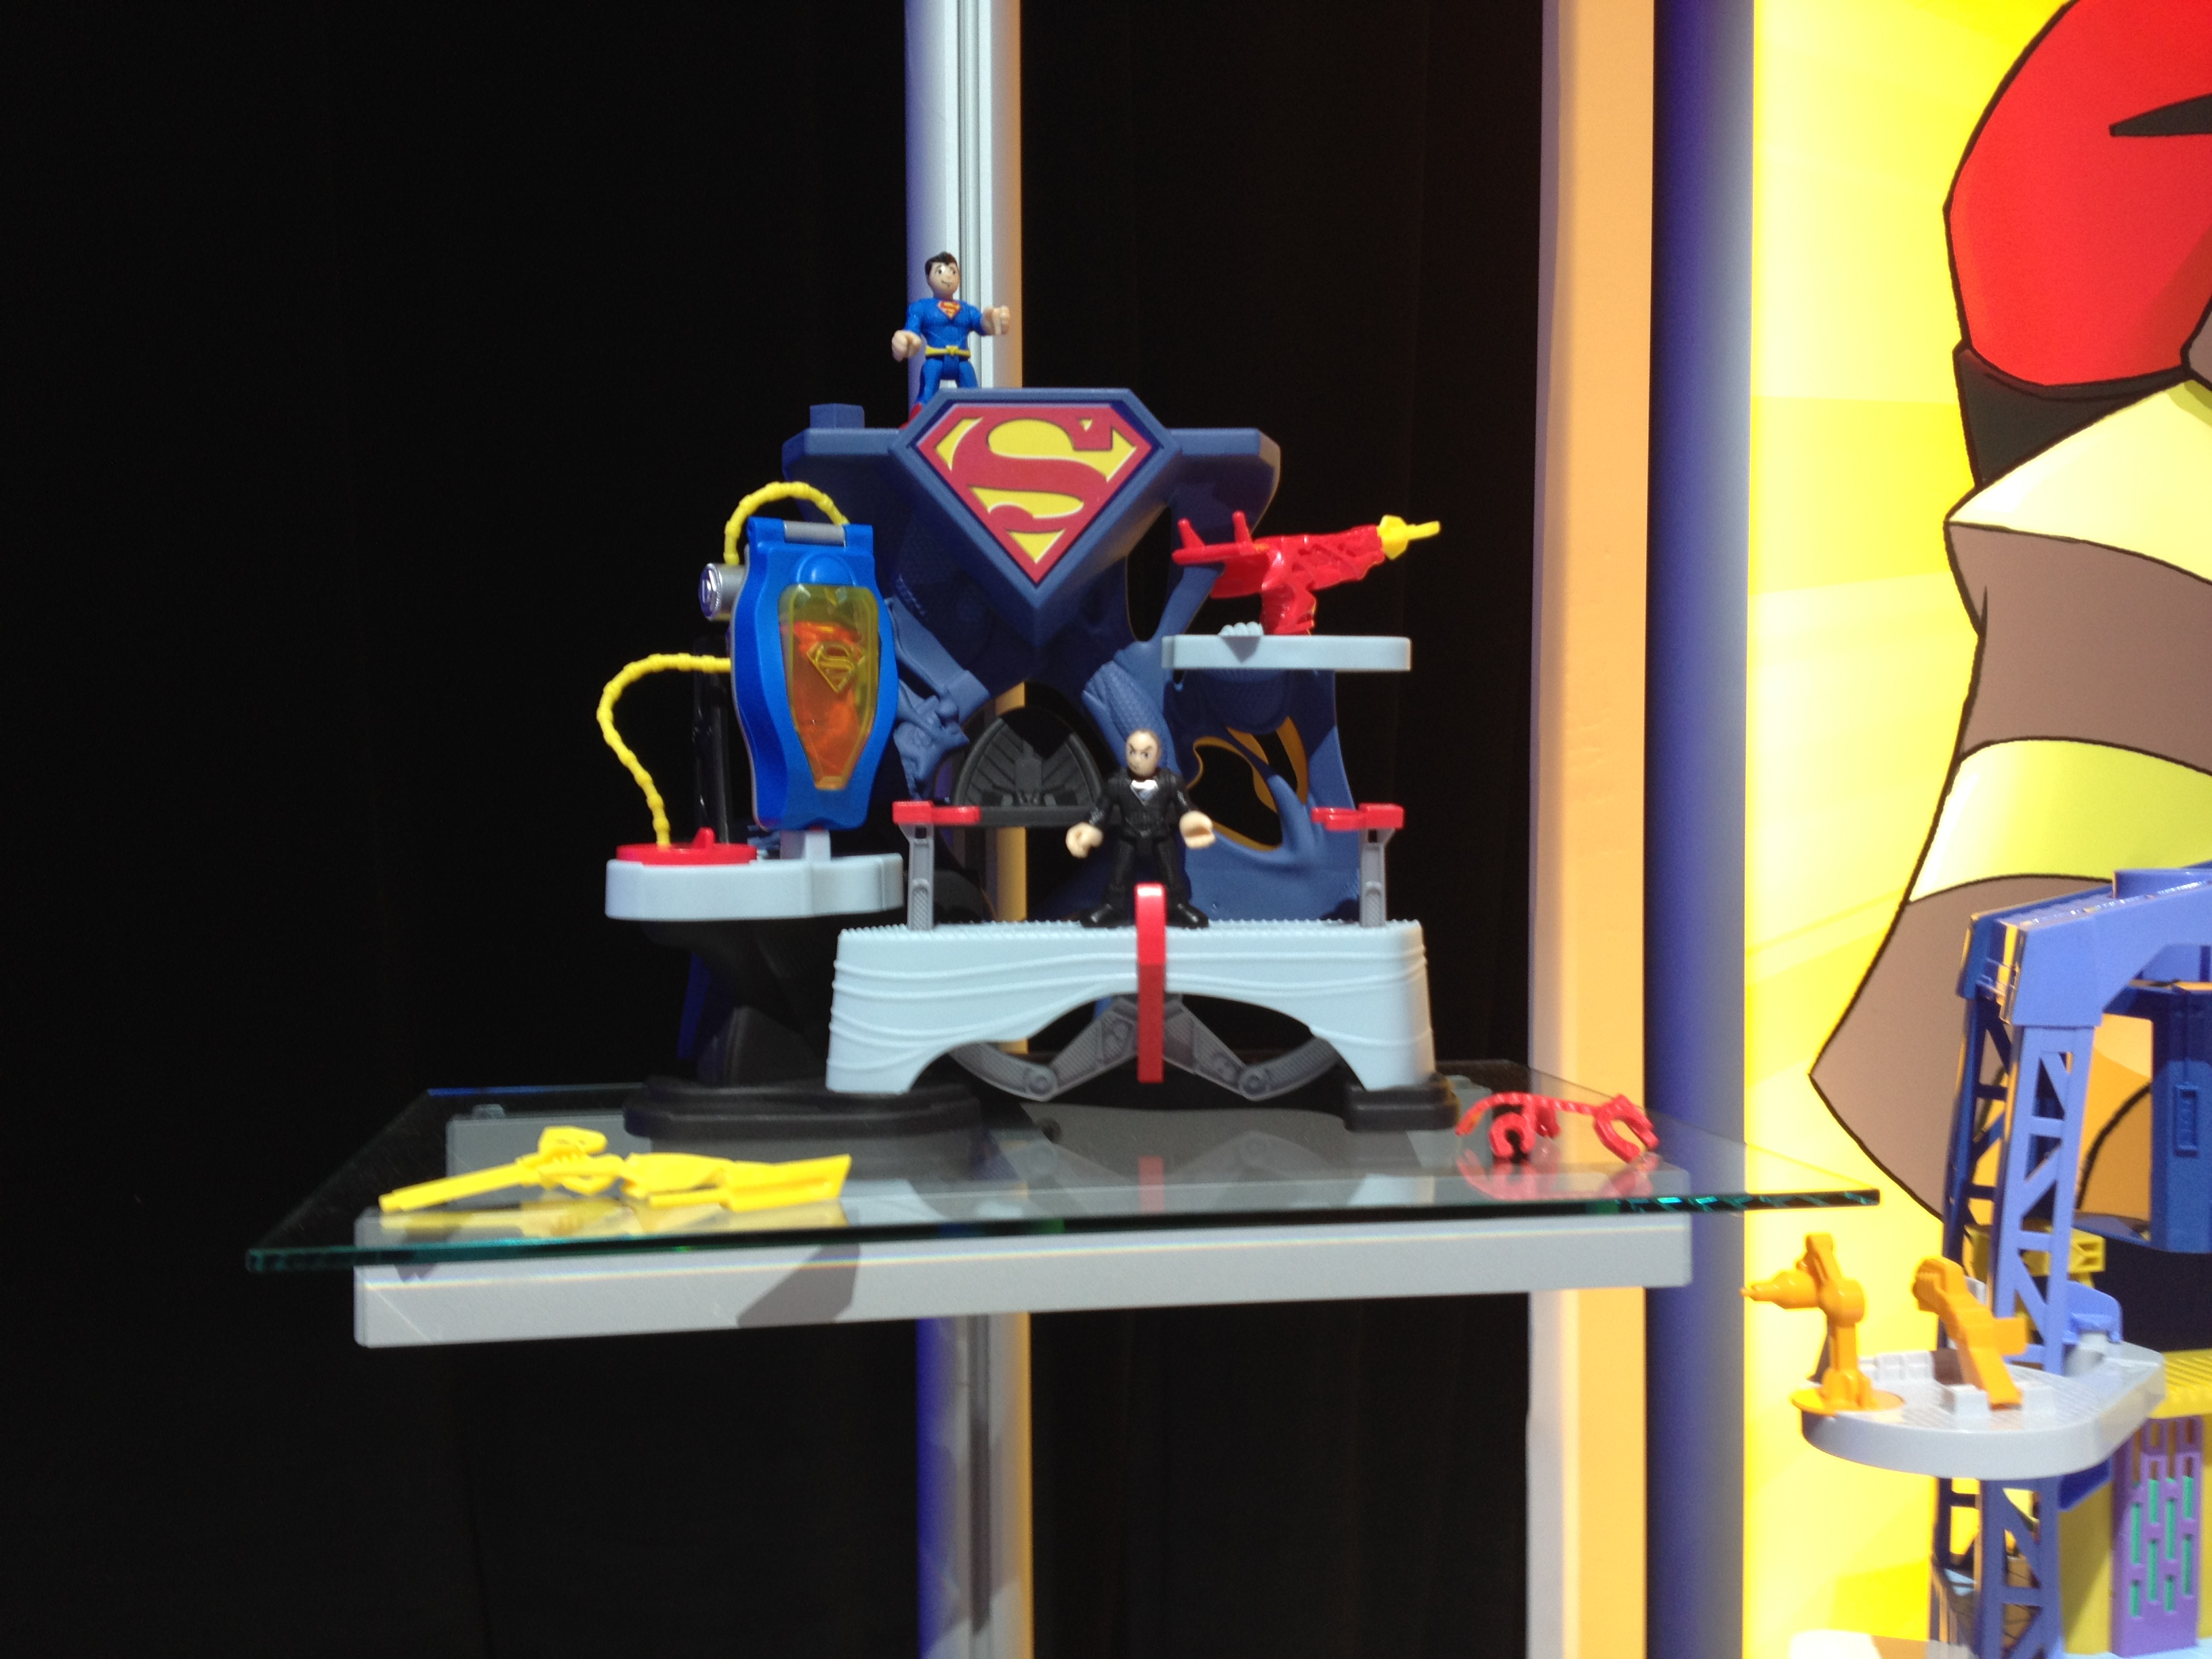 Imaginext will be adding several Superman play sets tied to the Man of Steel release this Summer.